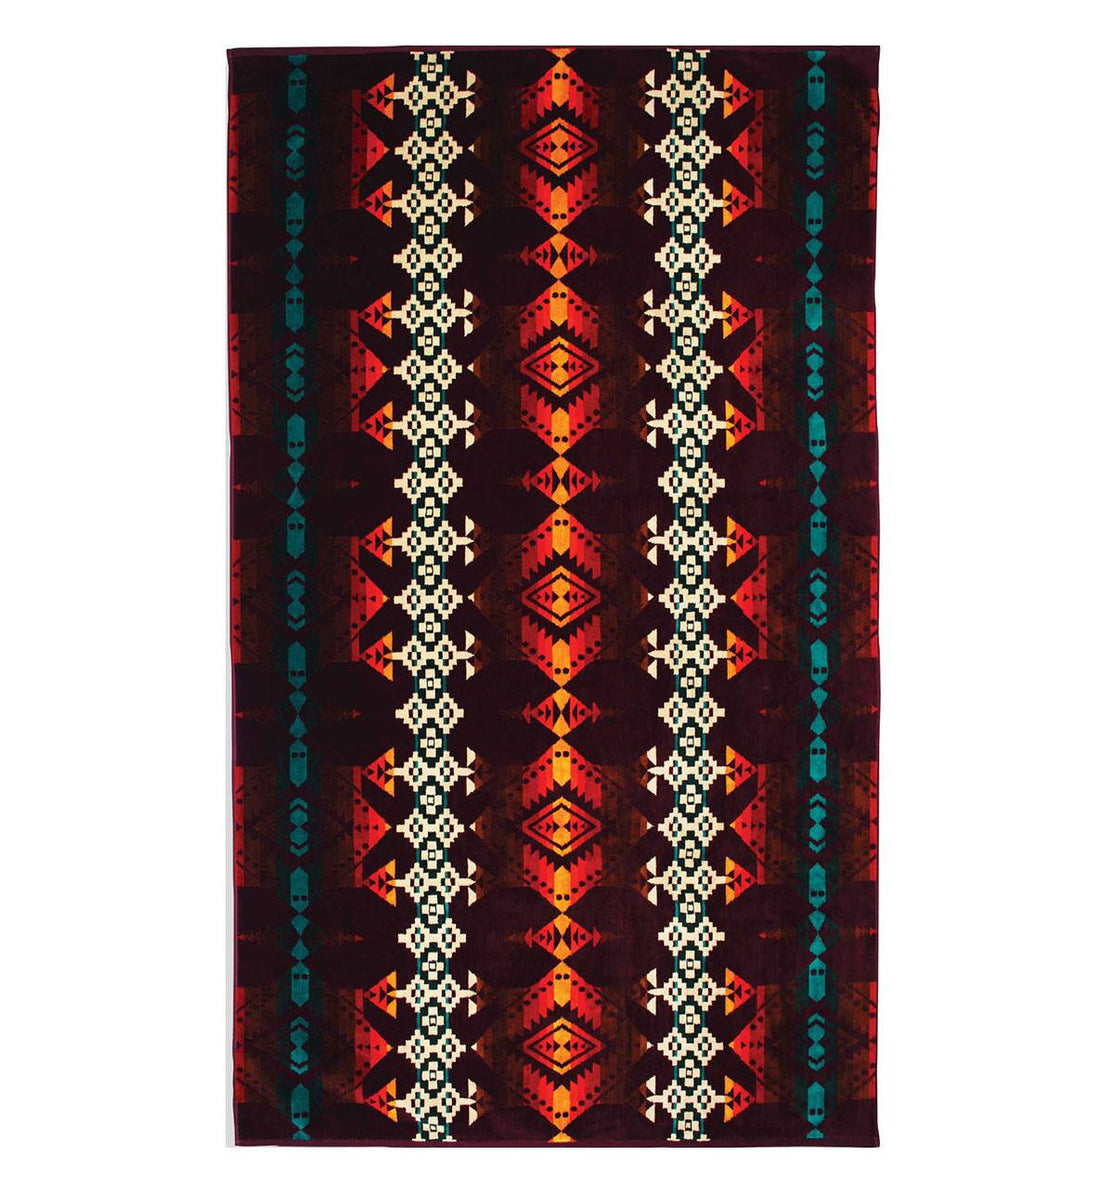 Pendleton Towel- Jerome - Outdoor Living/Travel - Iron and Resin